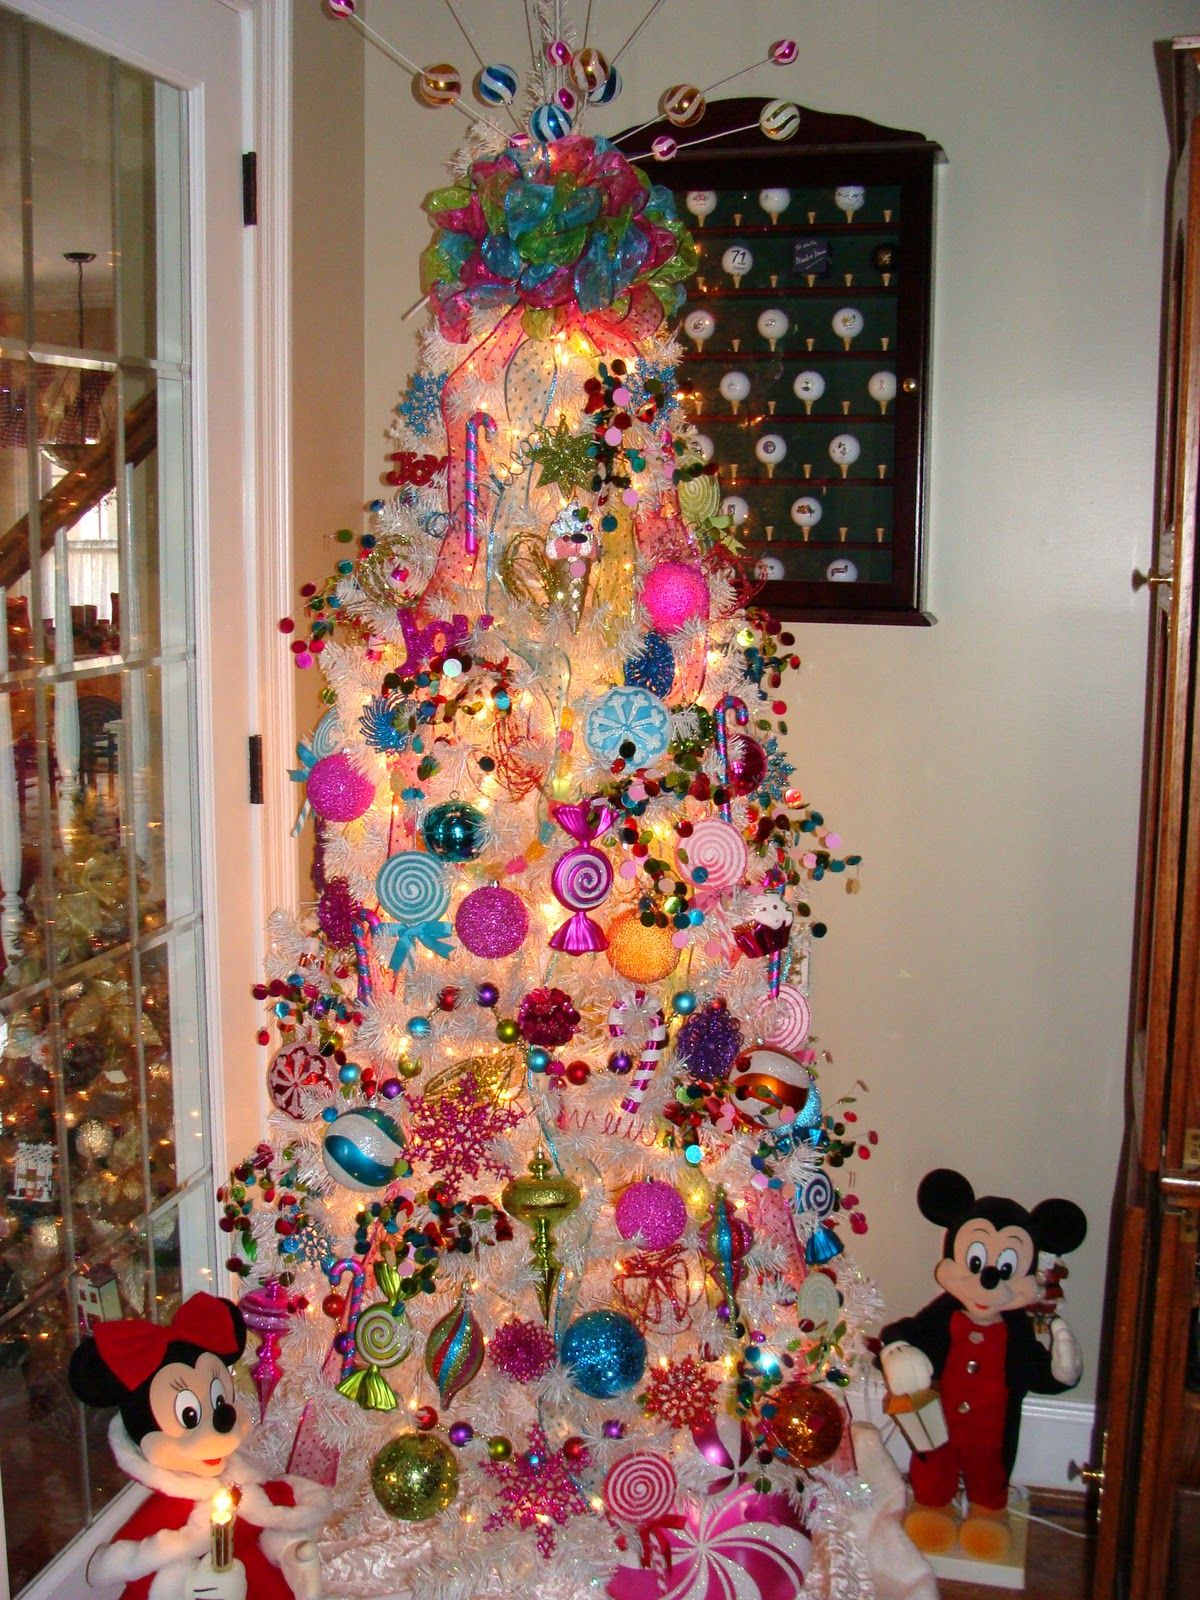 Christmas Candyland Theme.Christmas Candyland Theme With Purple And Red This Tree Is